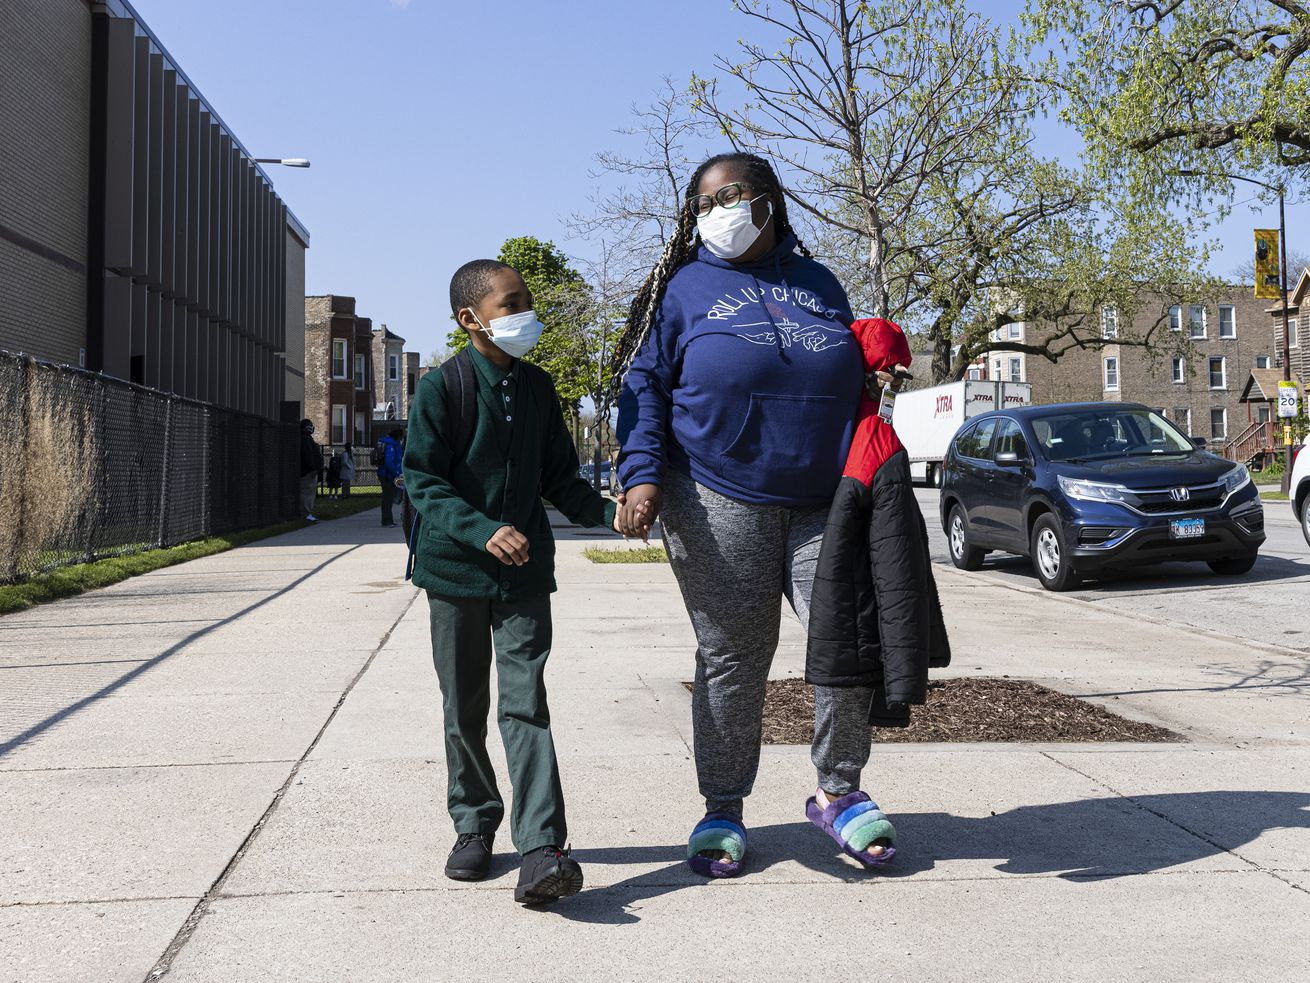 Alanna Barber and her son Sean Smith, 8, walk back to their vehicle after school outside of Beasley Elementary in Washington Park, Thursday, April 29, 2021.